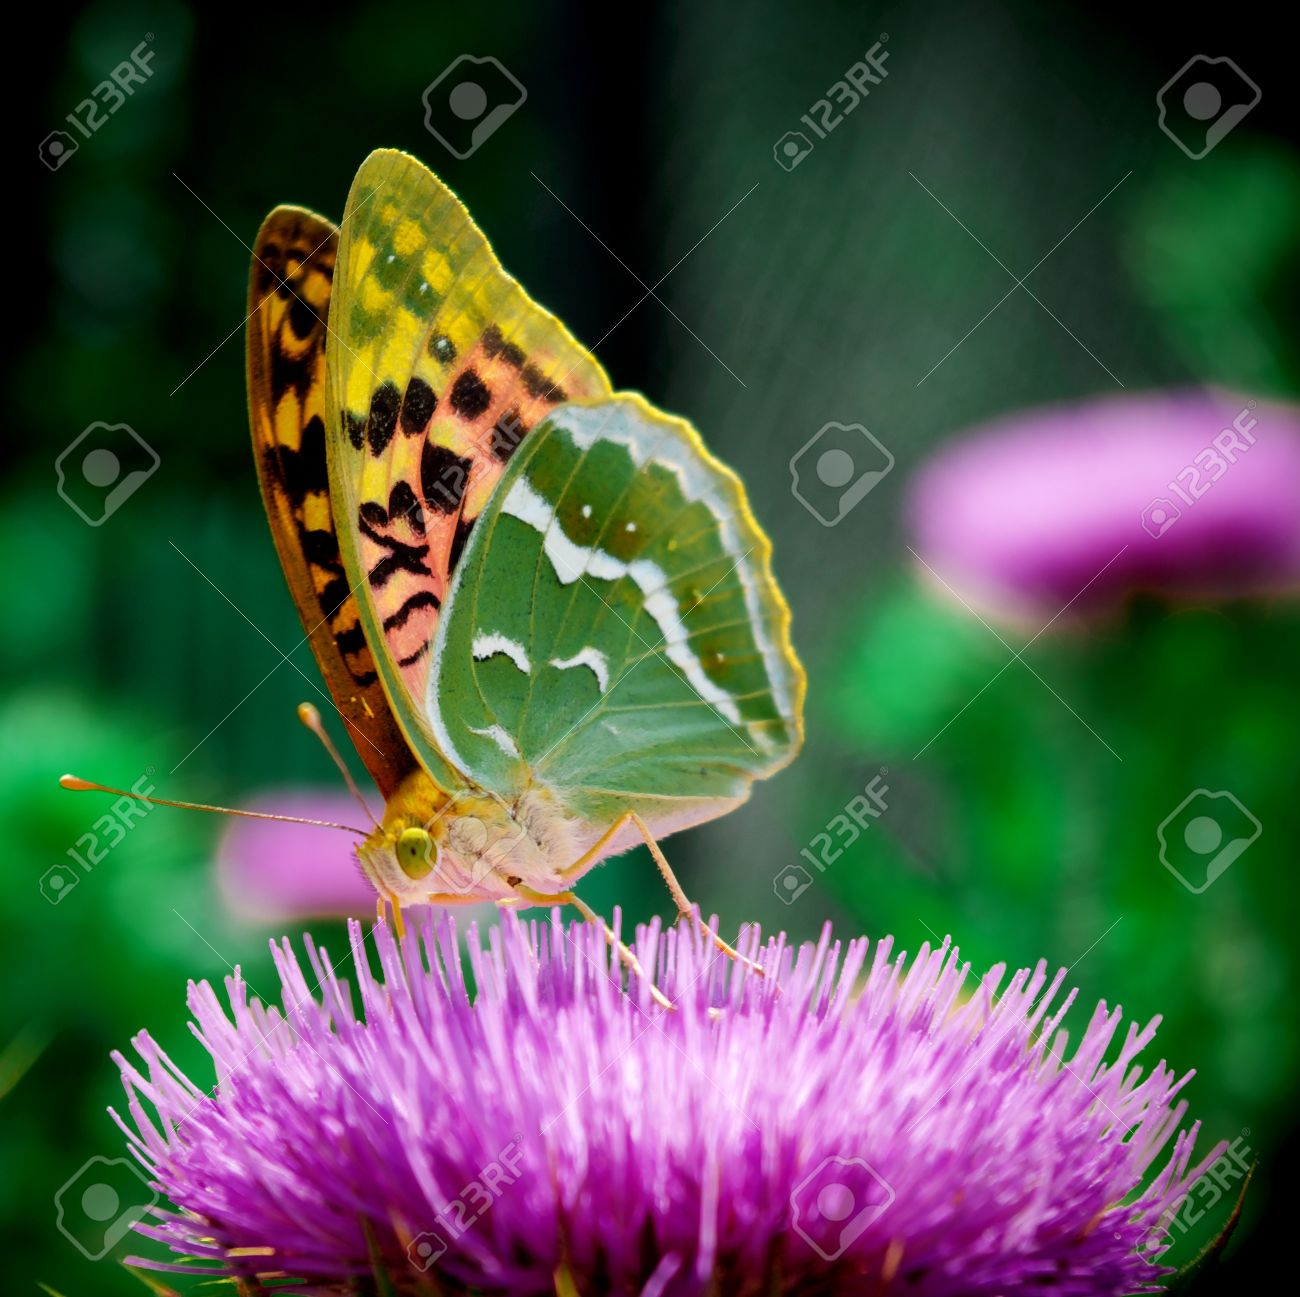 Butterfly On Flower Nature Composition Stock Photo Picture And